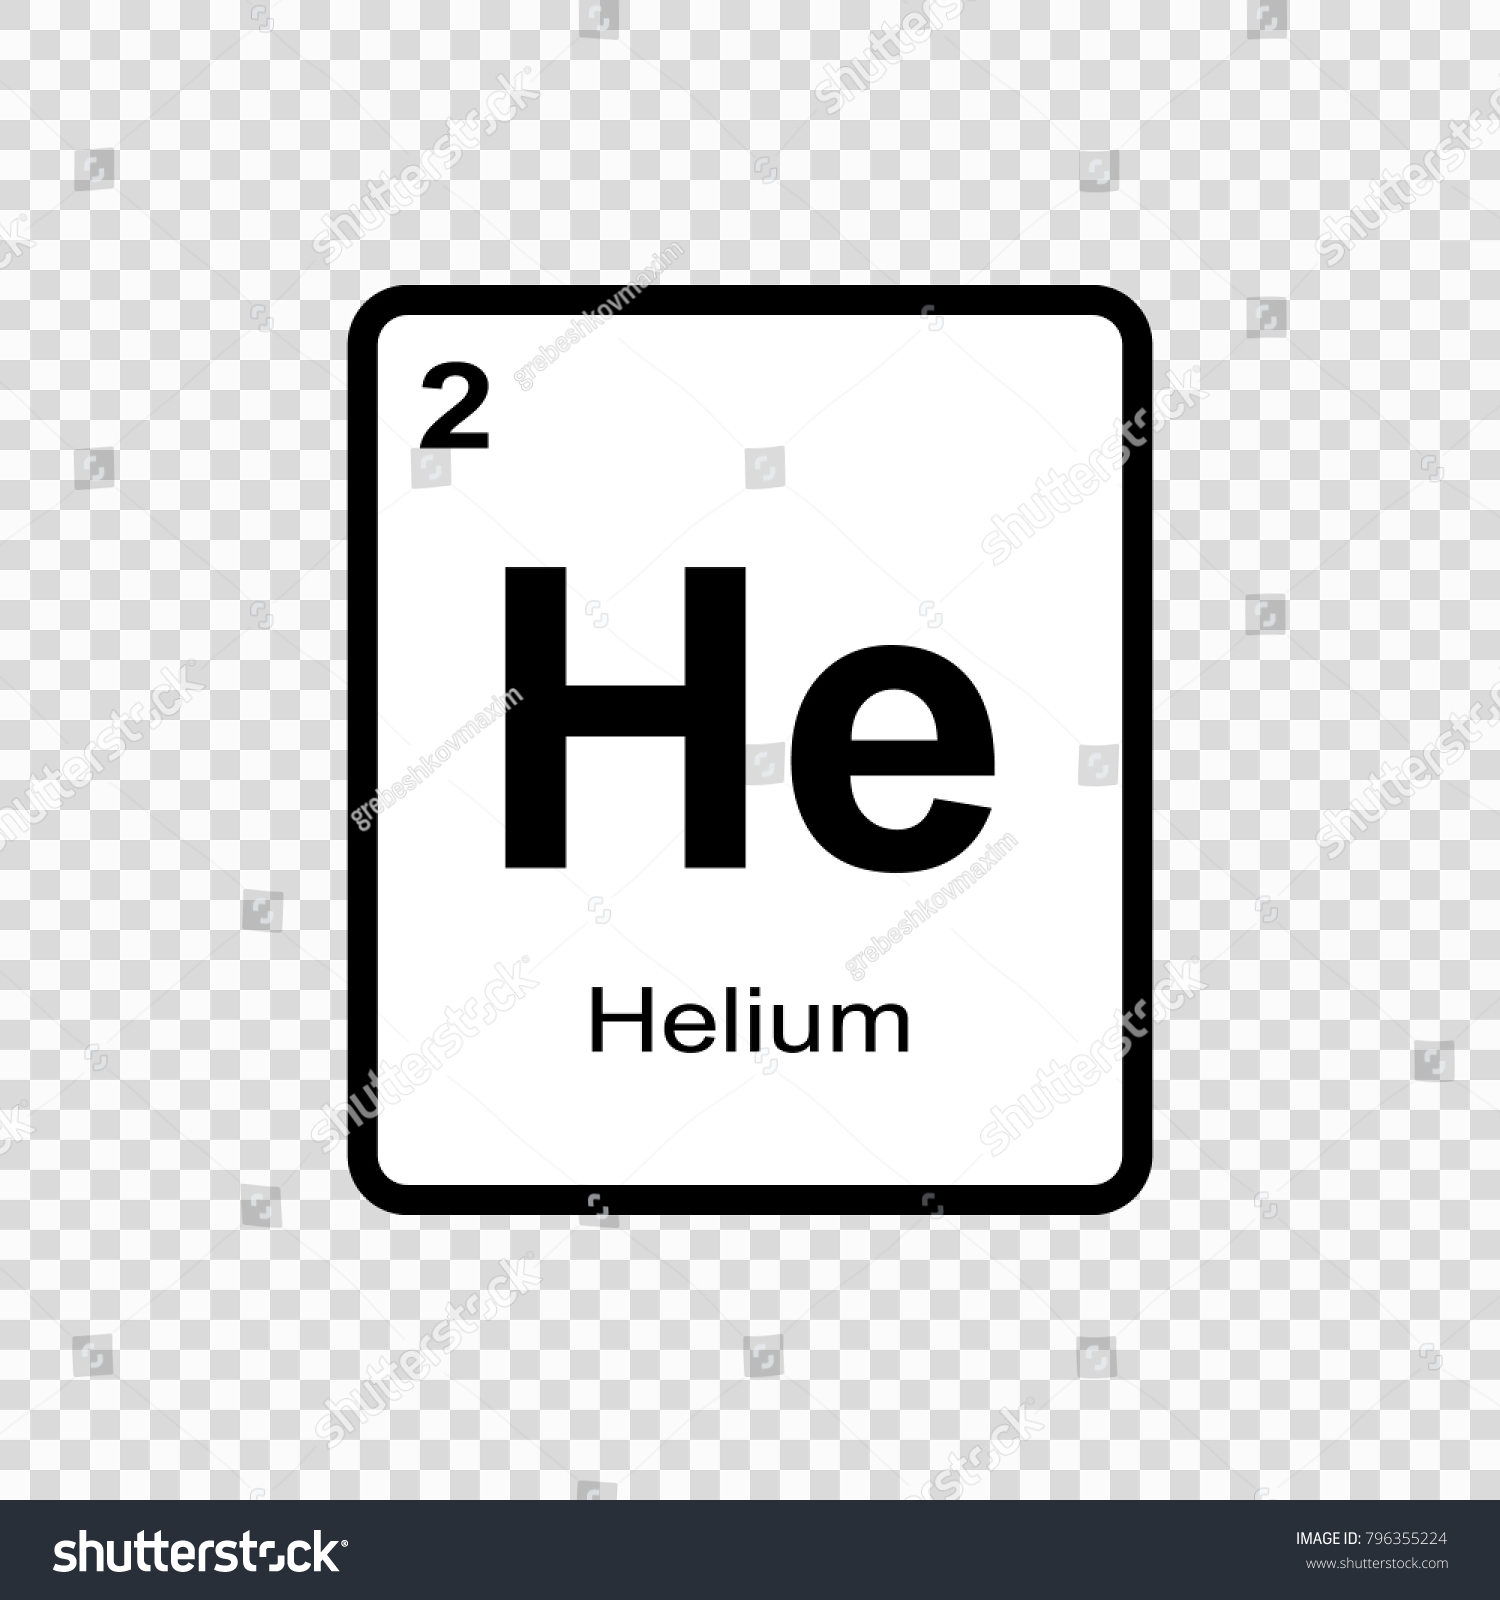 Helium chemical element sign atomic number stock vector 796355224 helium chemical element sign with atomic number chemical element of periodic table buycottarizona